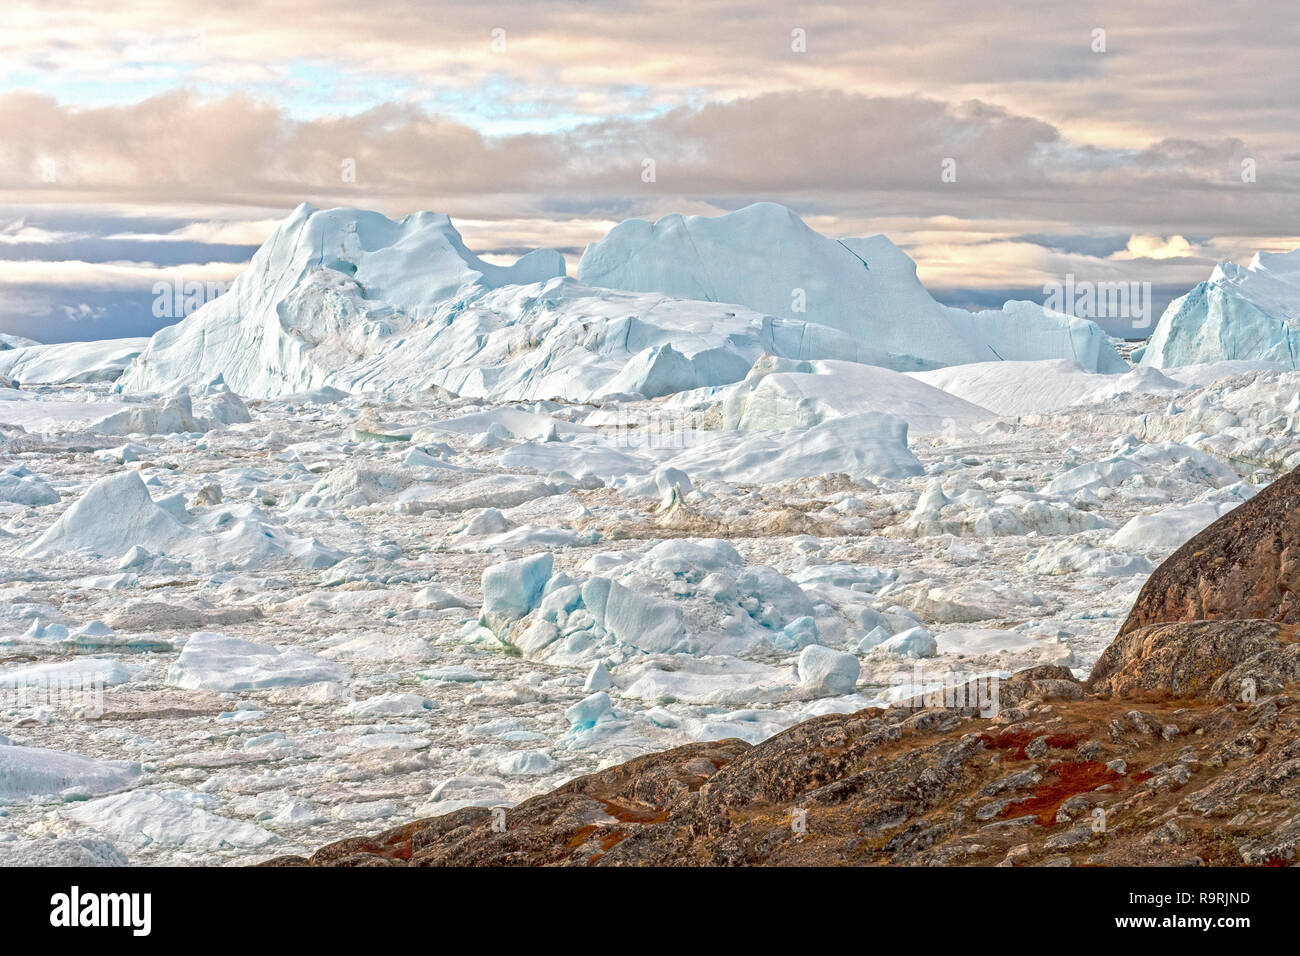 Massive Icebergs in a Frozen Fjord in the Icefjord of Ilulissat, Greenland - Stock Image